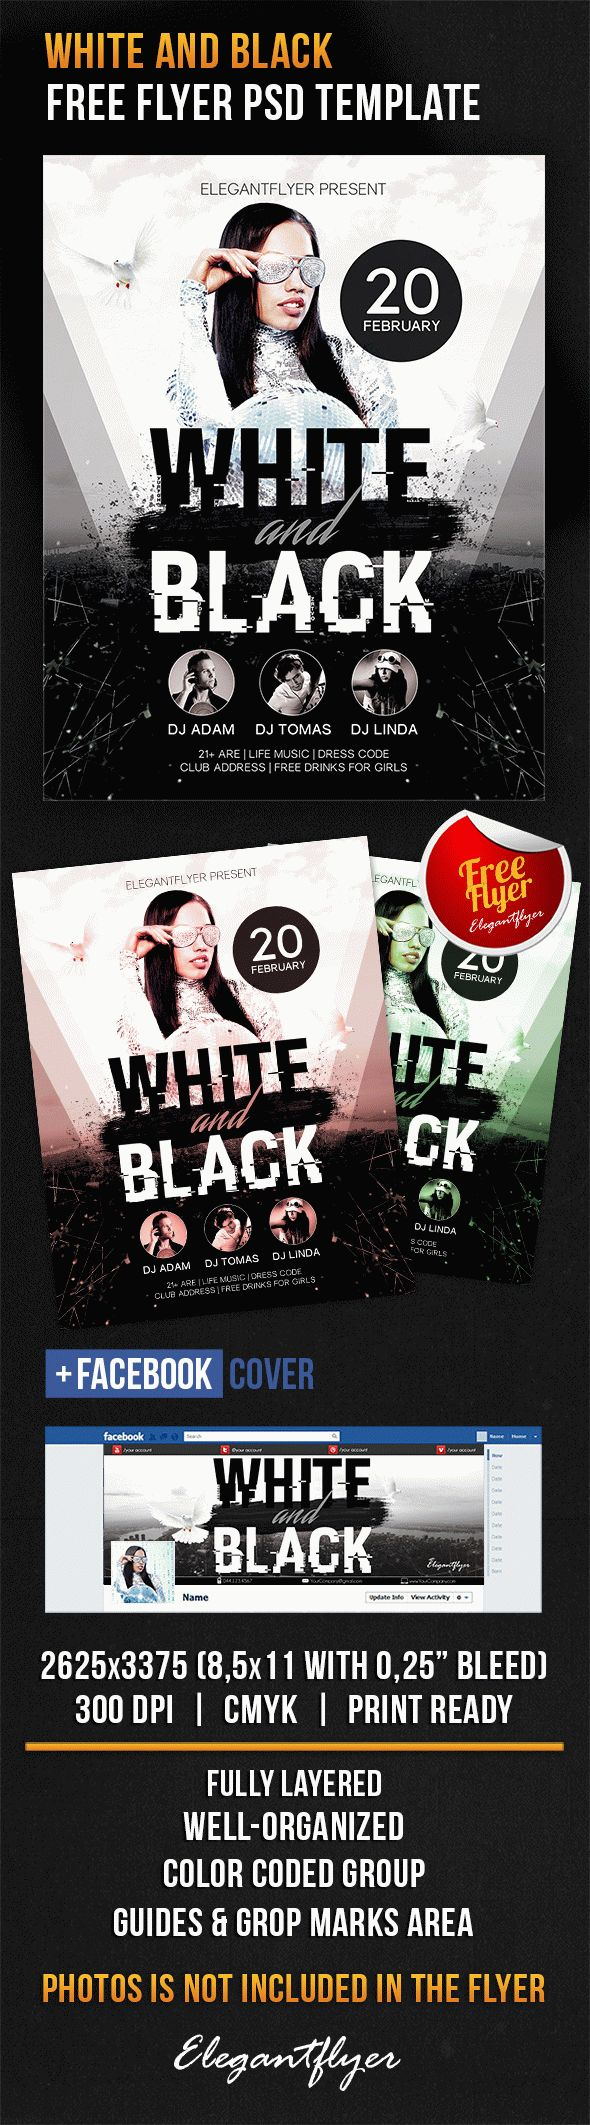 White And Black – Free Flyer PSD Template + Facebook Cover